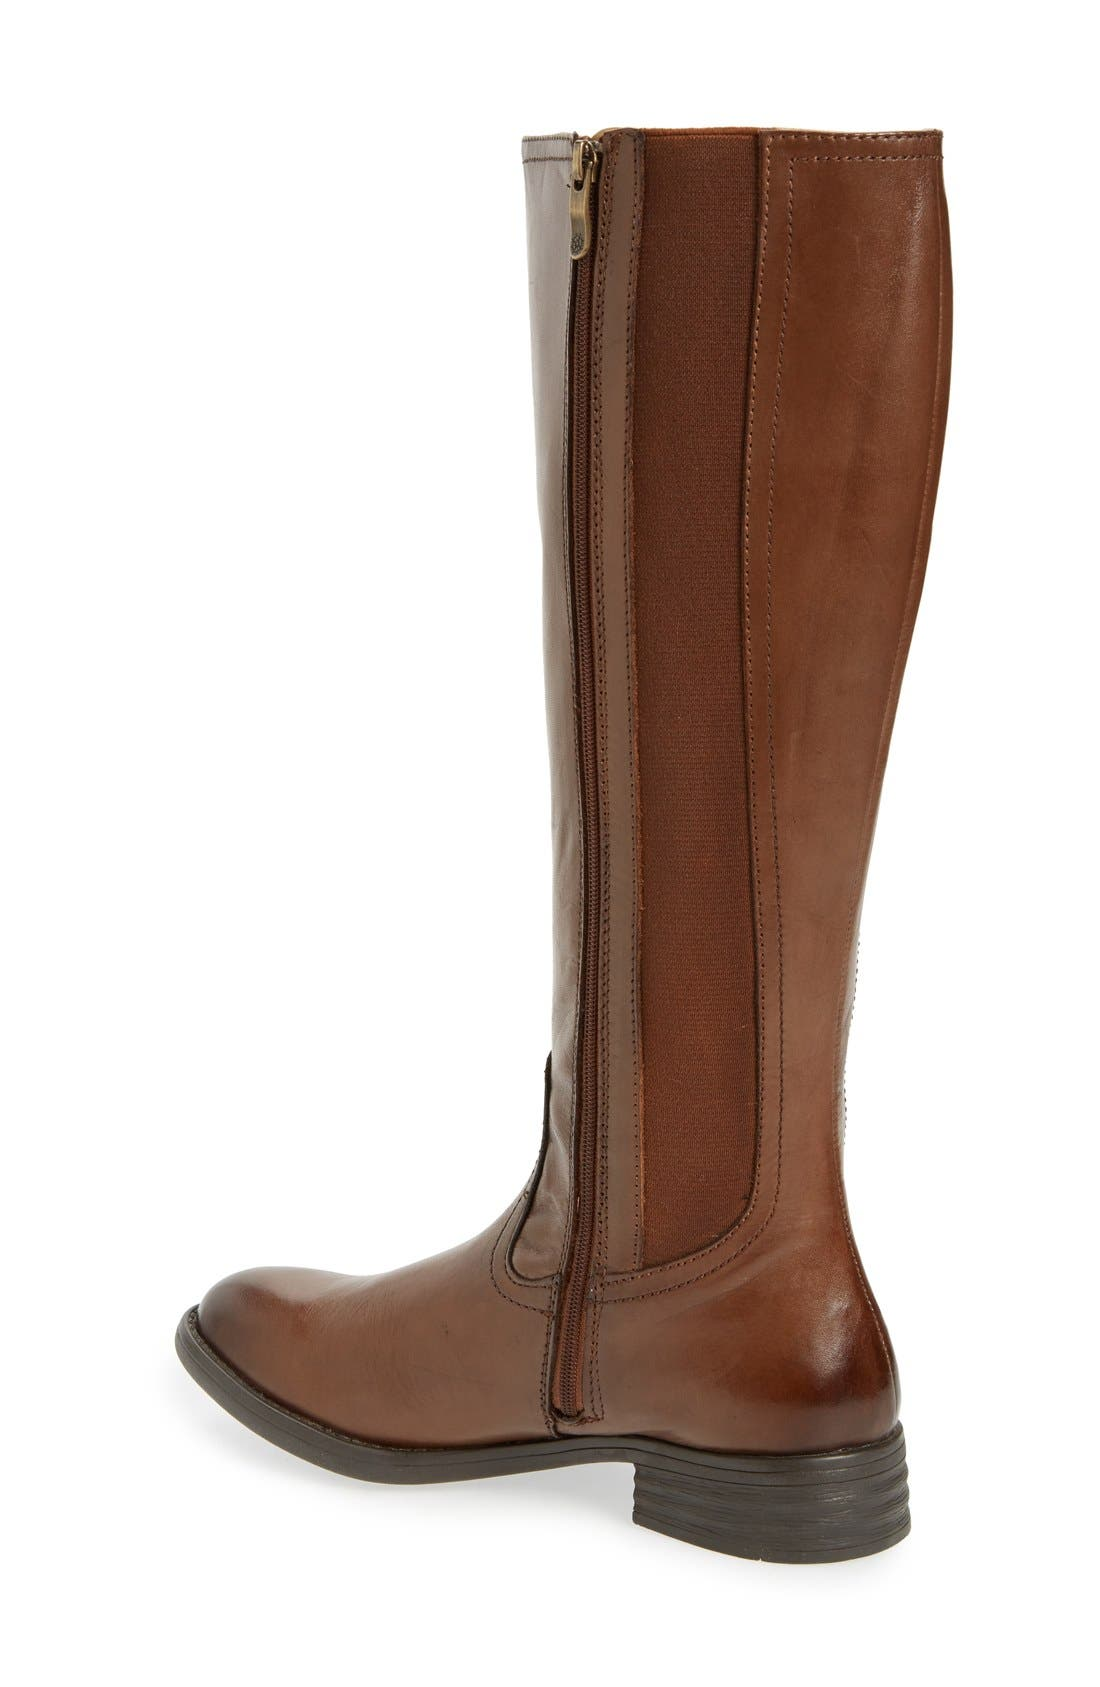 Alternate Image 2  - Bussola 'Tanga' Riding Boot (Women)